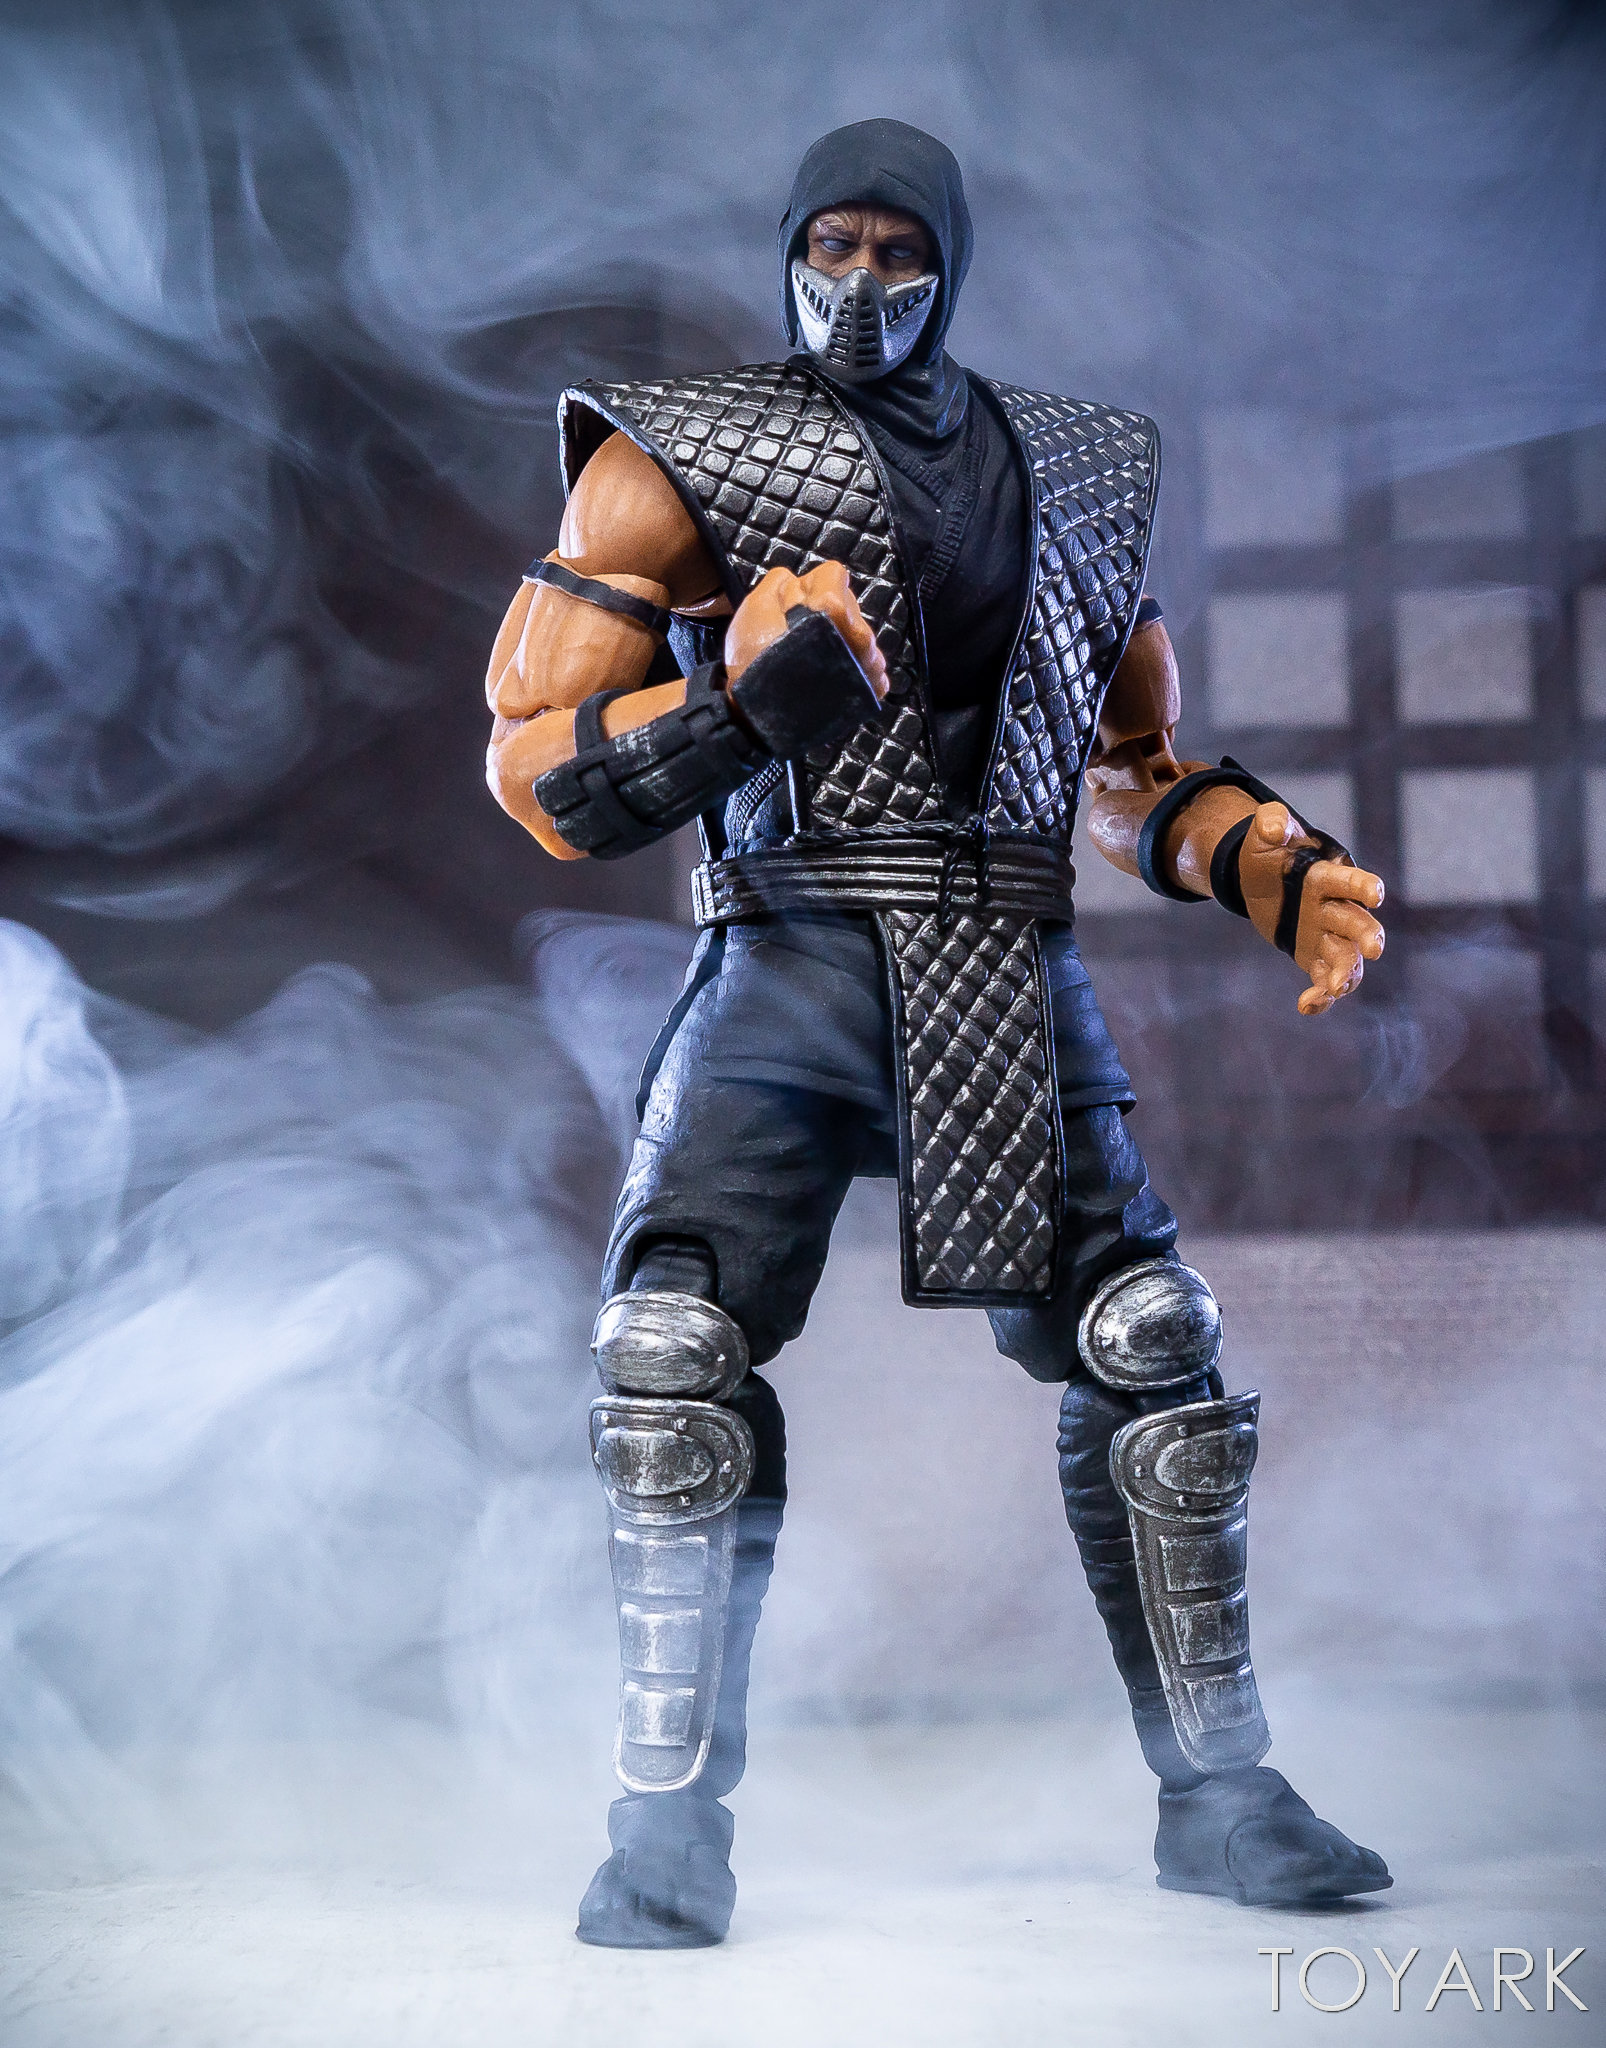 https://news.toyark.com/wp-content/uploads/sites/4/2018/12/Storm-NYCC-18-Mortal-Kombat-Figures-030.jpg